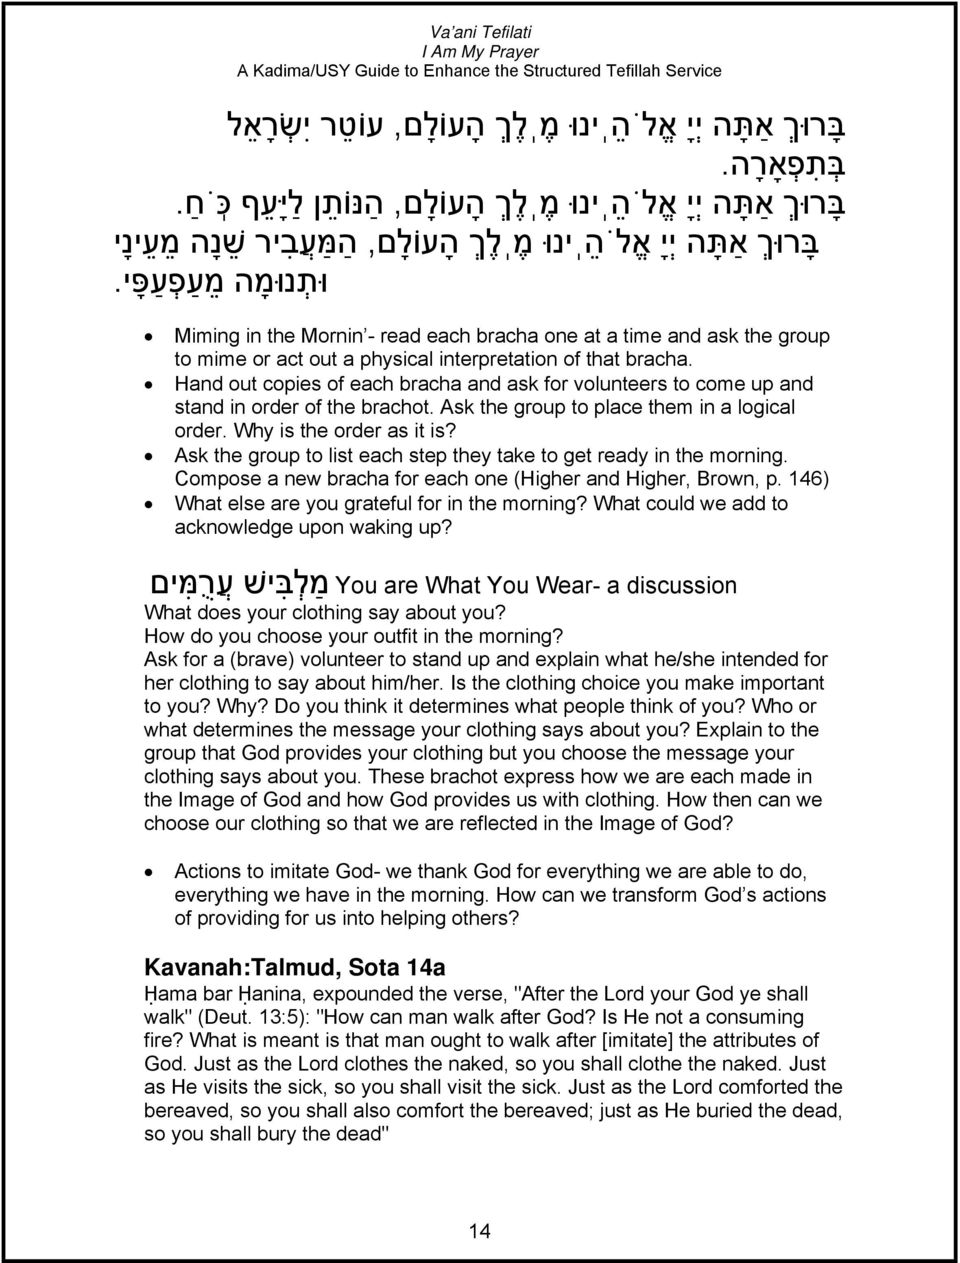 Miming in the Mornin - read each bracha one at a time and ask the group to mime or act out a physical interpretation of that bracha.